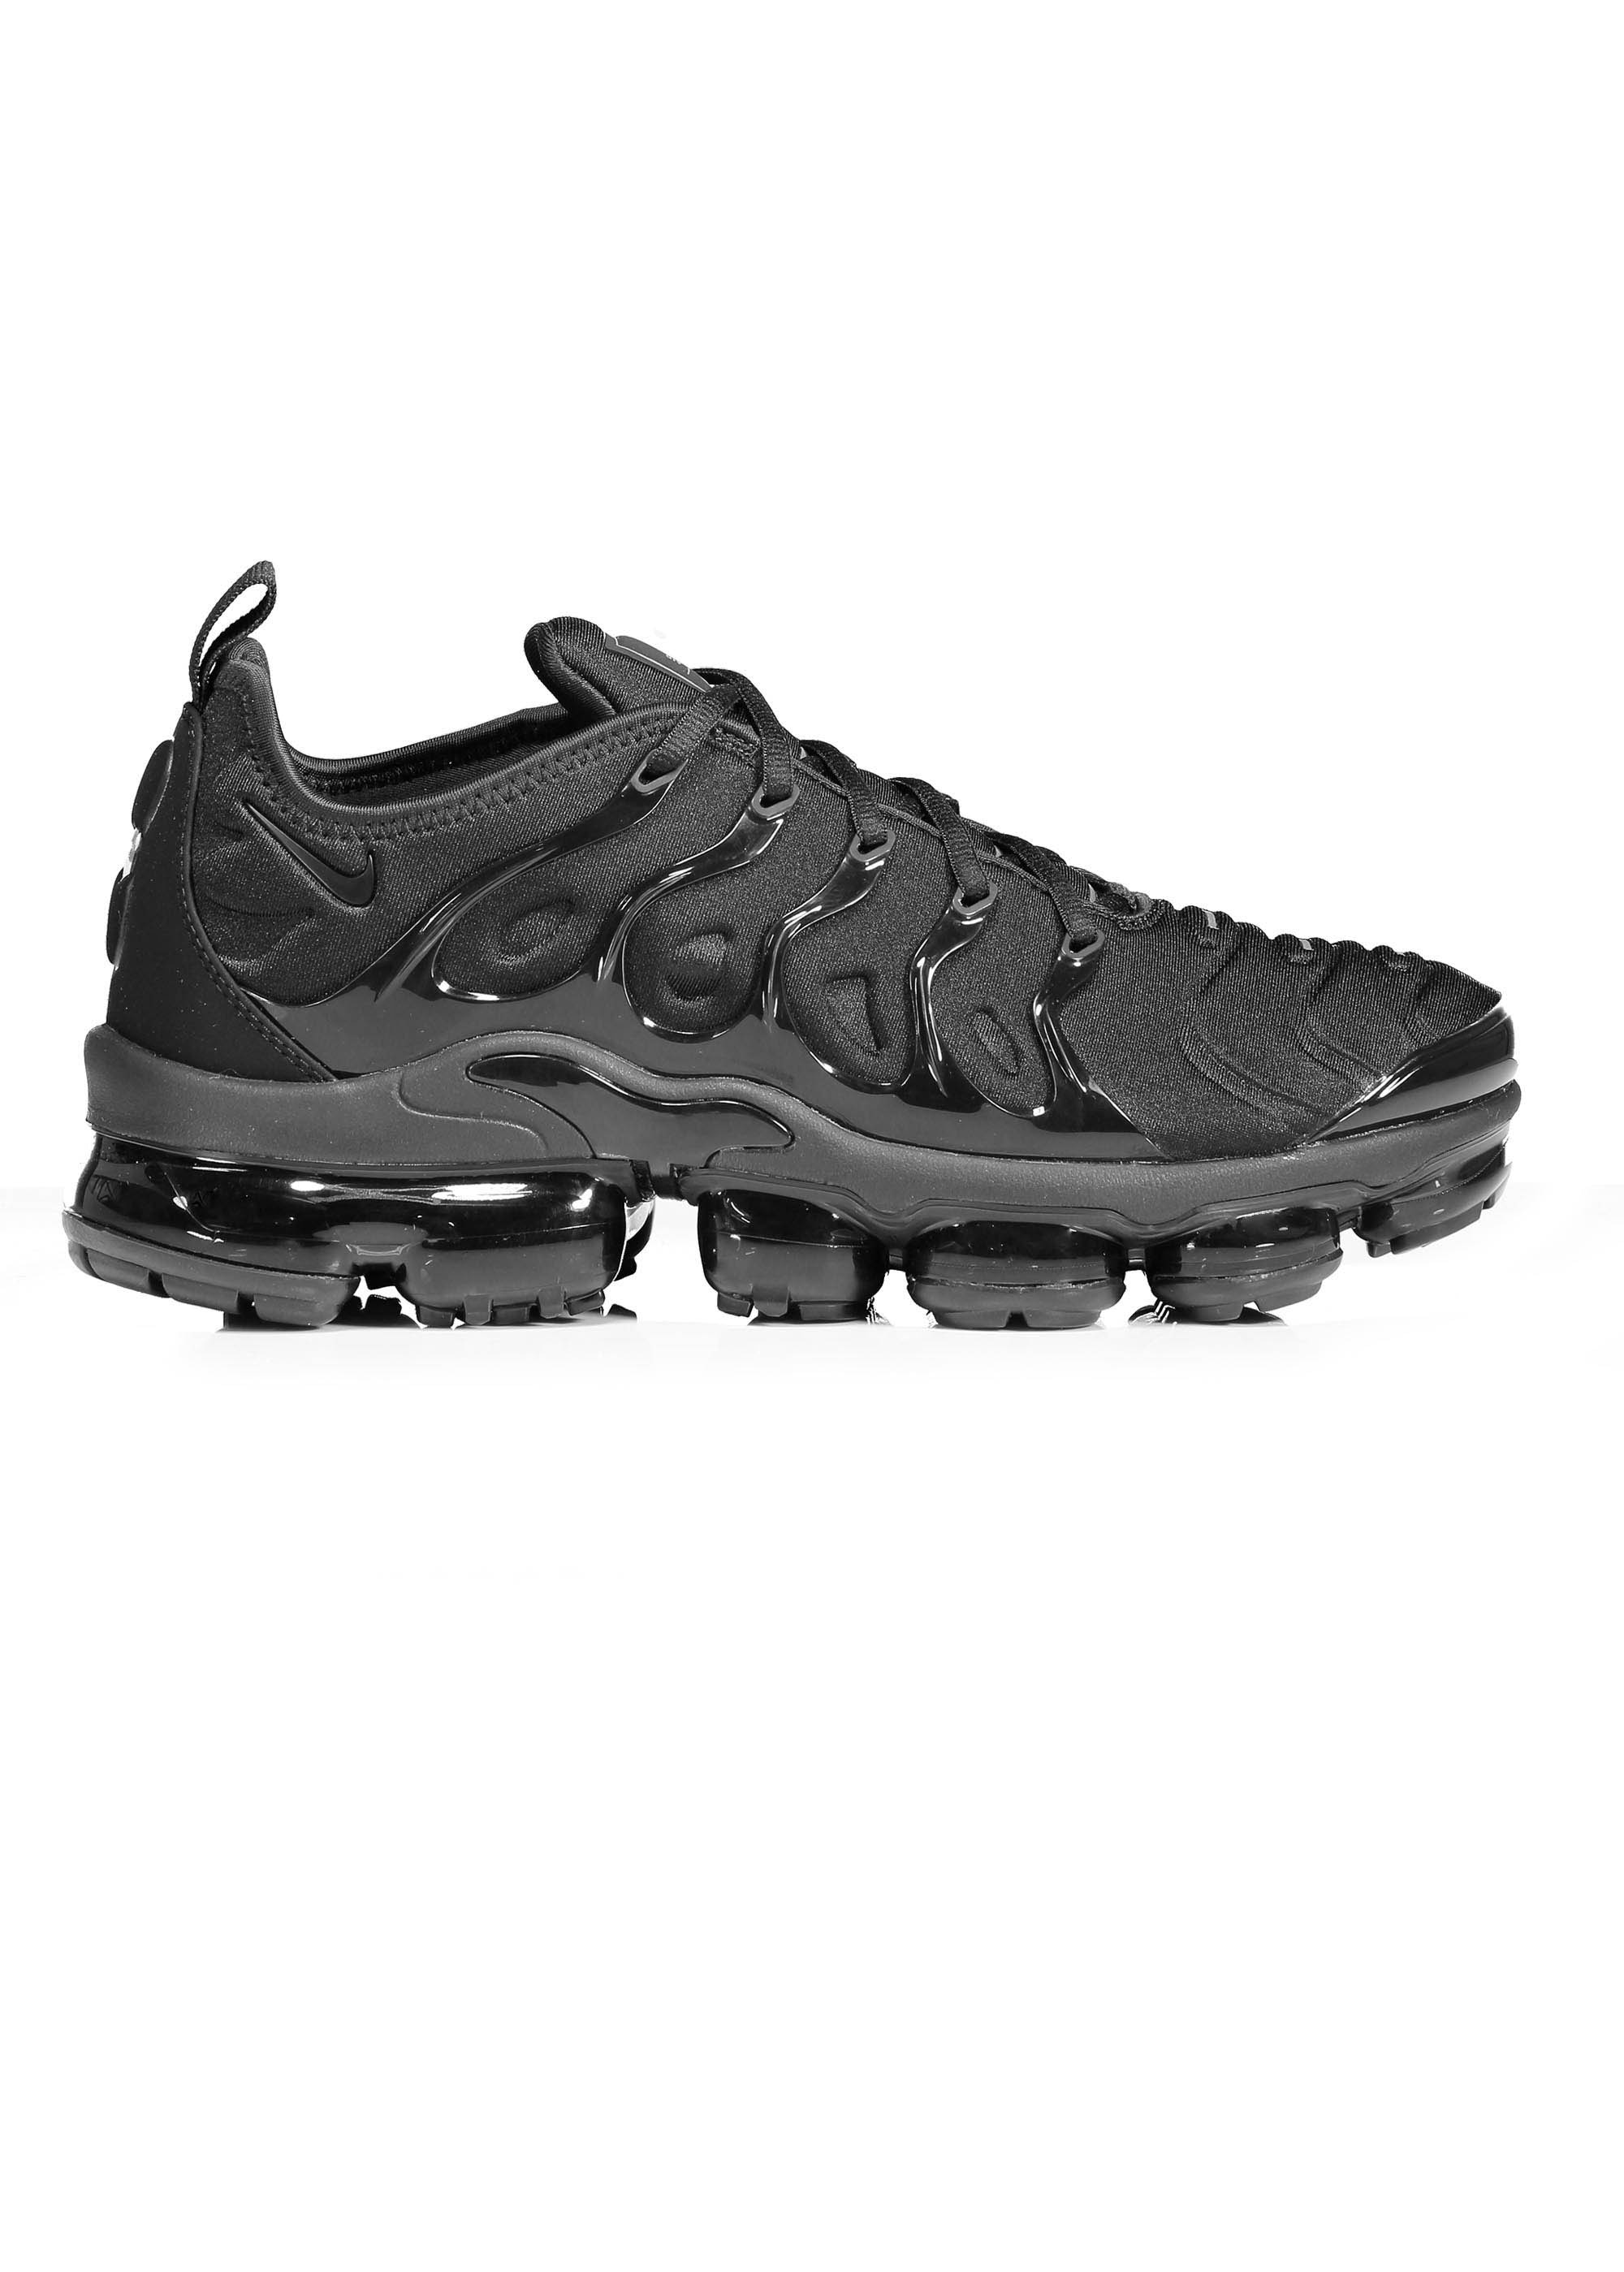 on sale 0285e 8f683 Air VaporMax Plus - Black